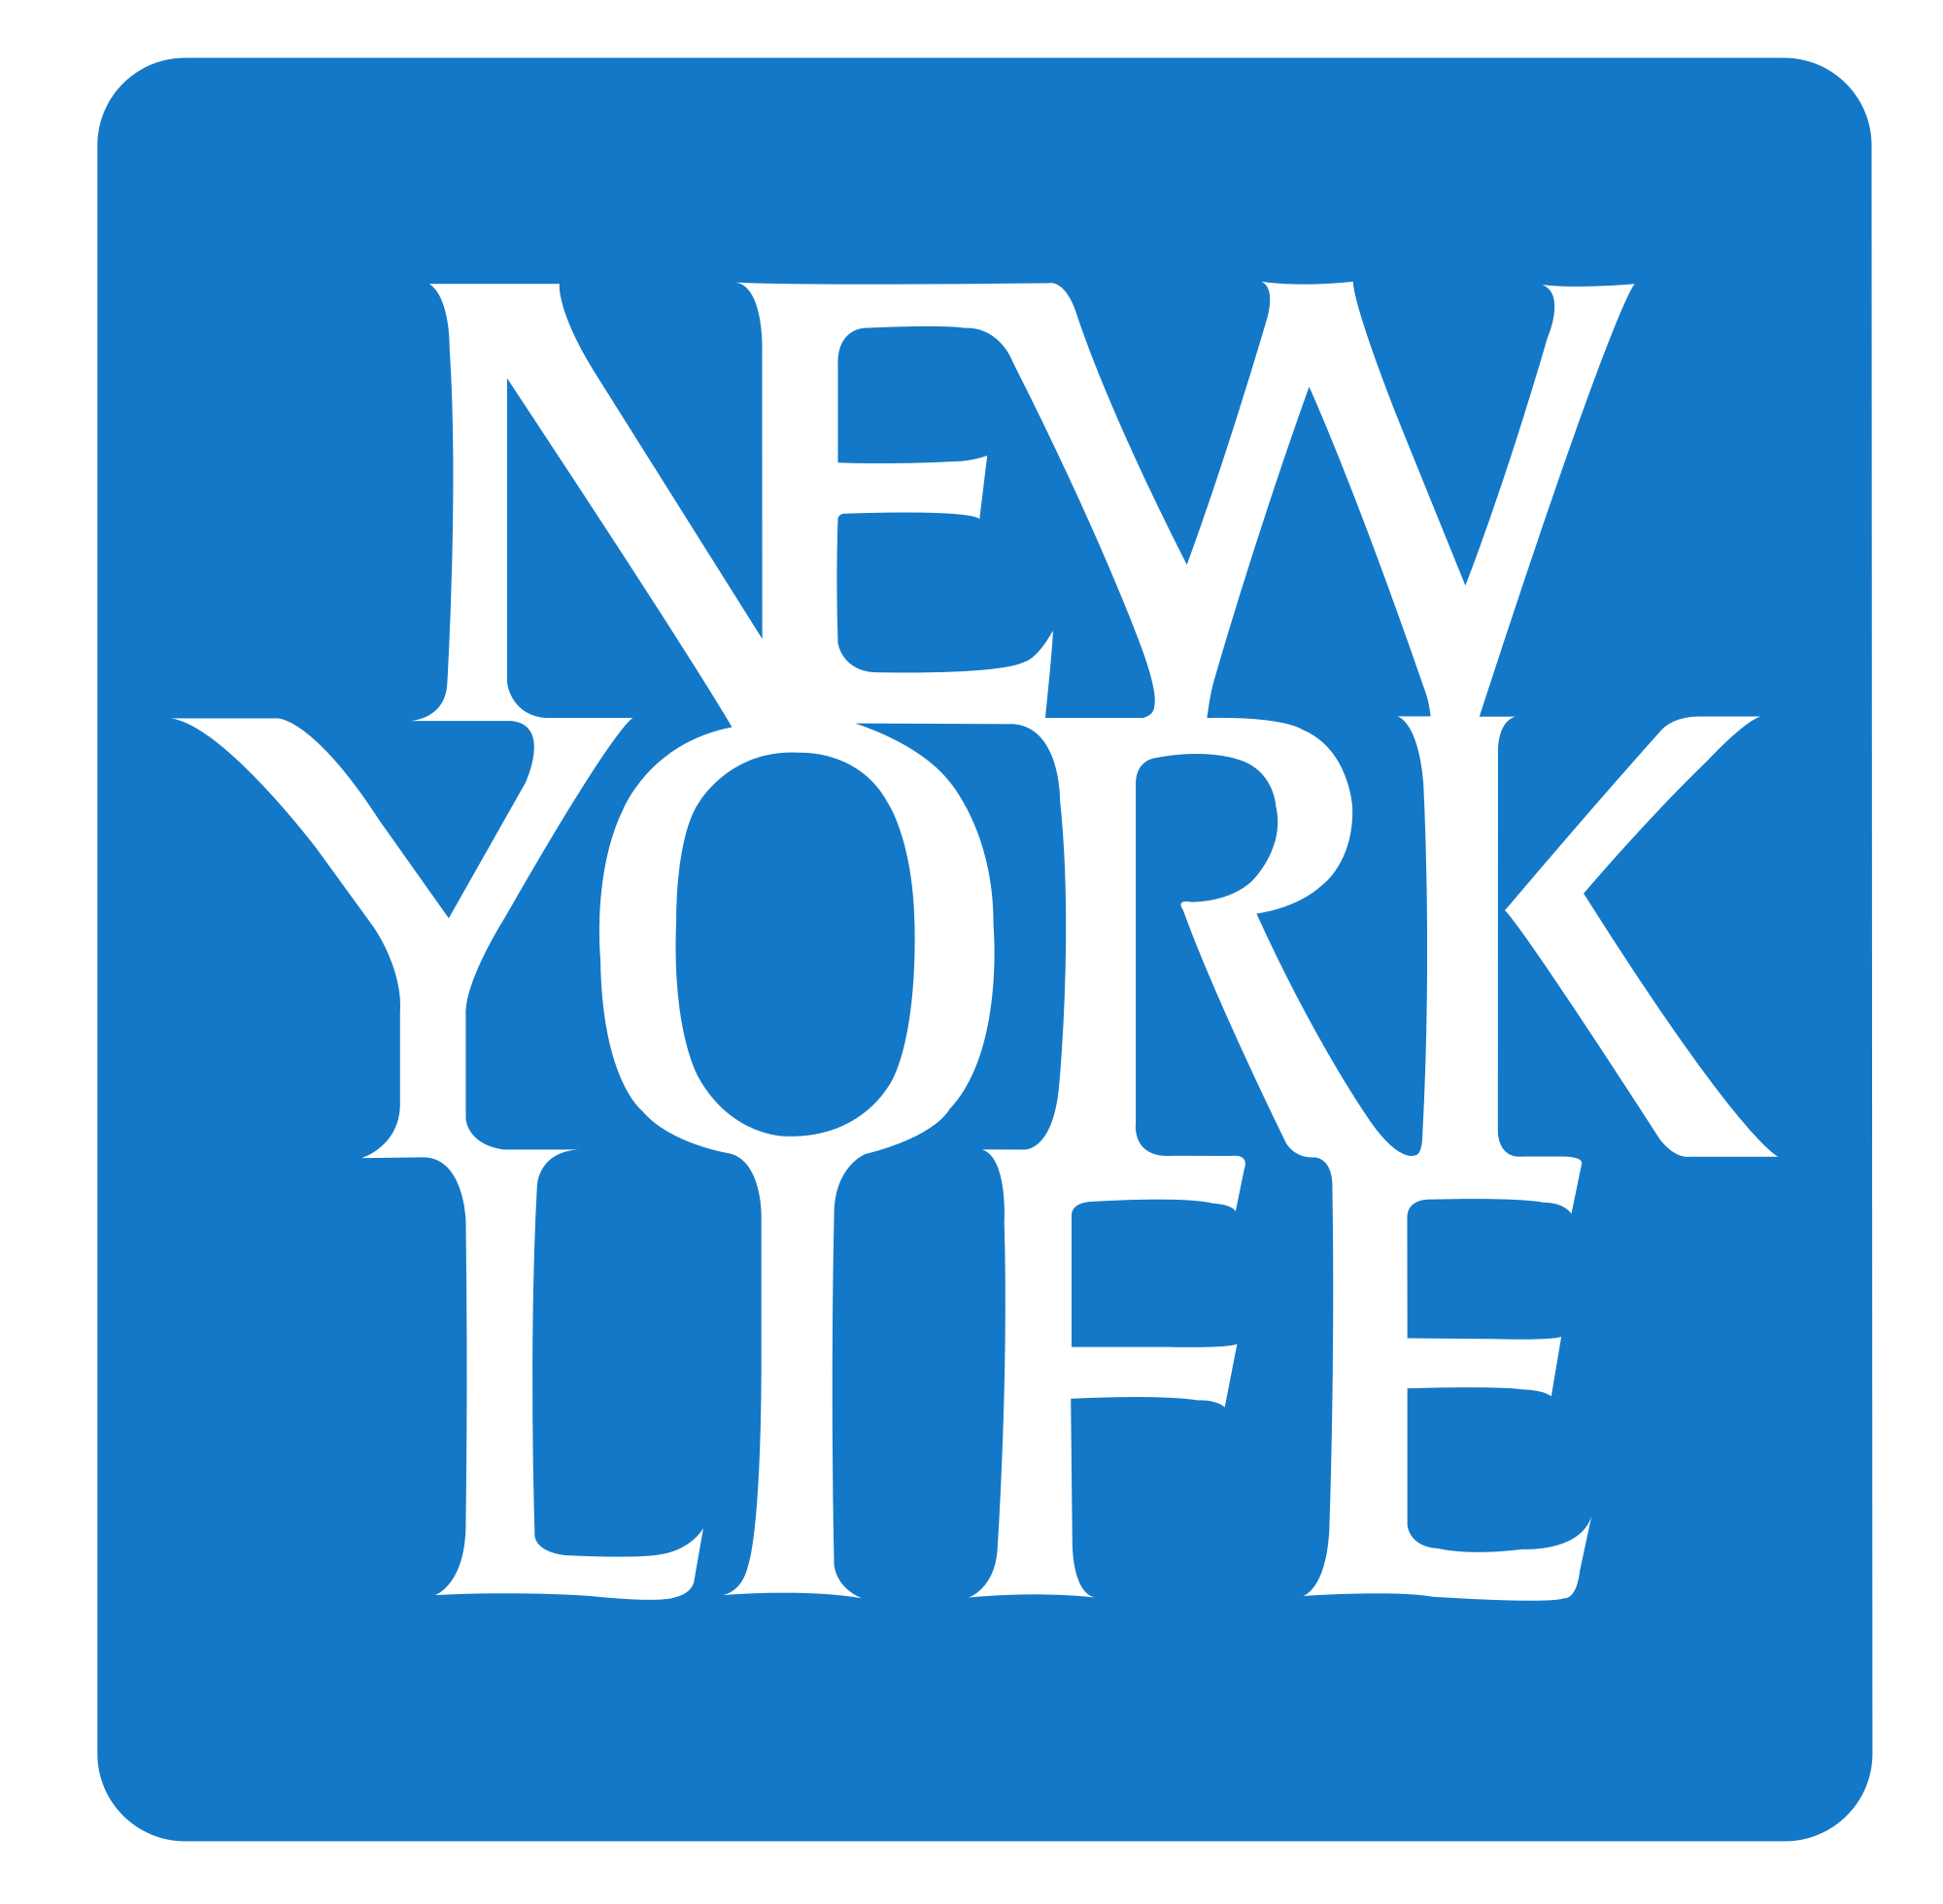 https://www.nerdwallet.com/assets/blog/wp-content/uploads/2015/09/logo_new_york_life.png